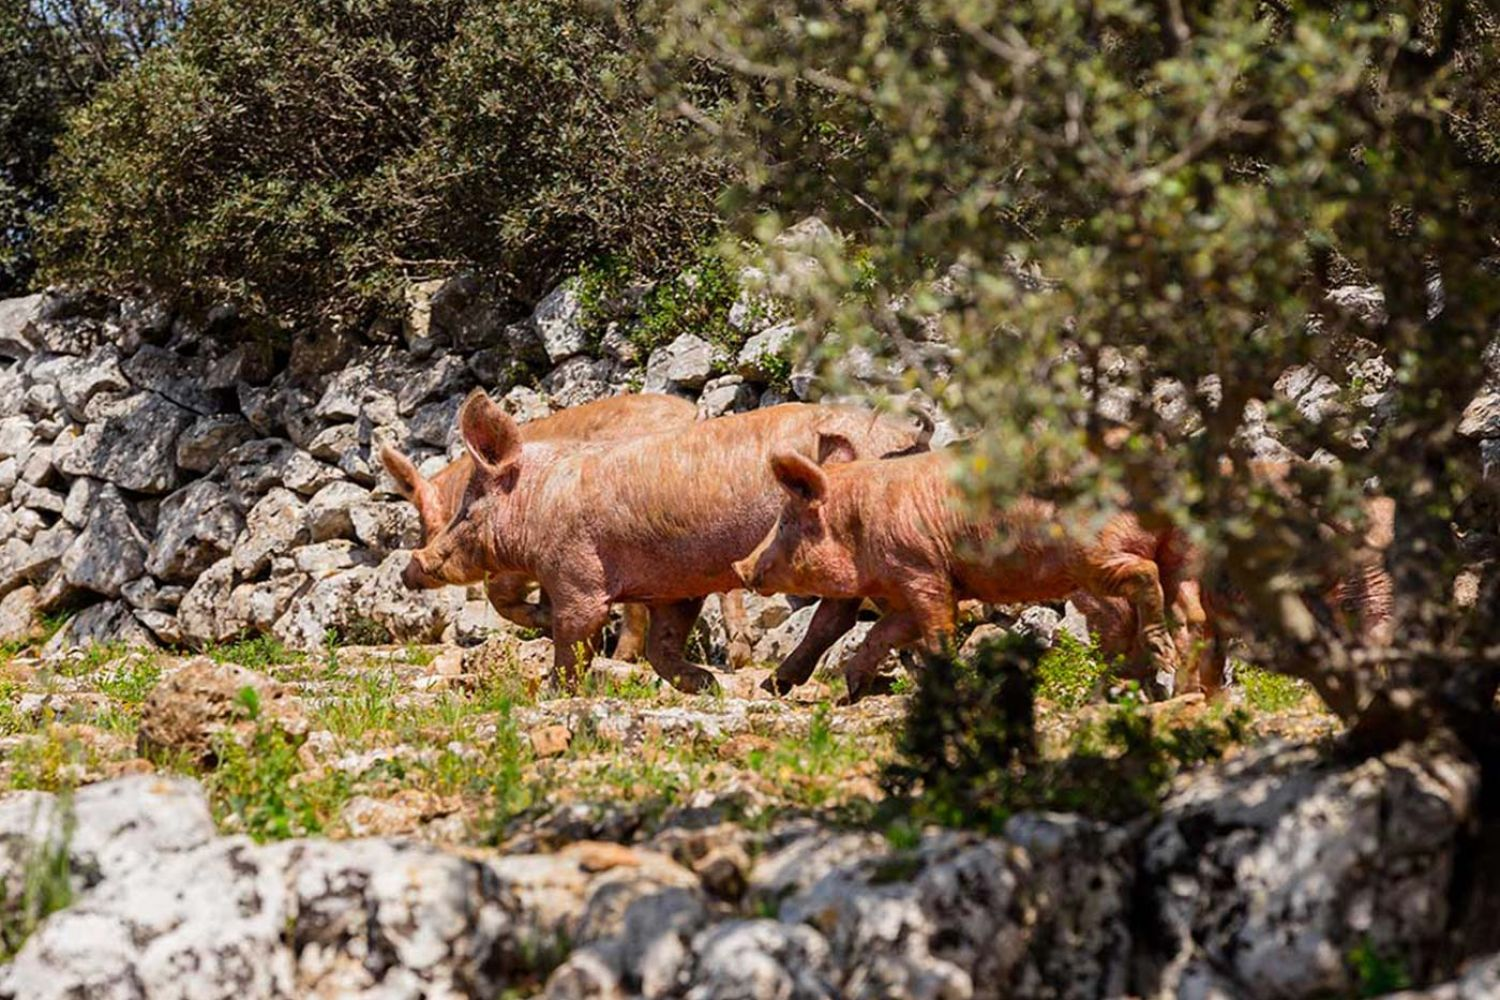 swines grazing in a semi-wild state in Valle d'itria